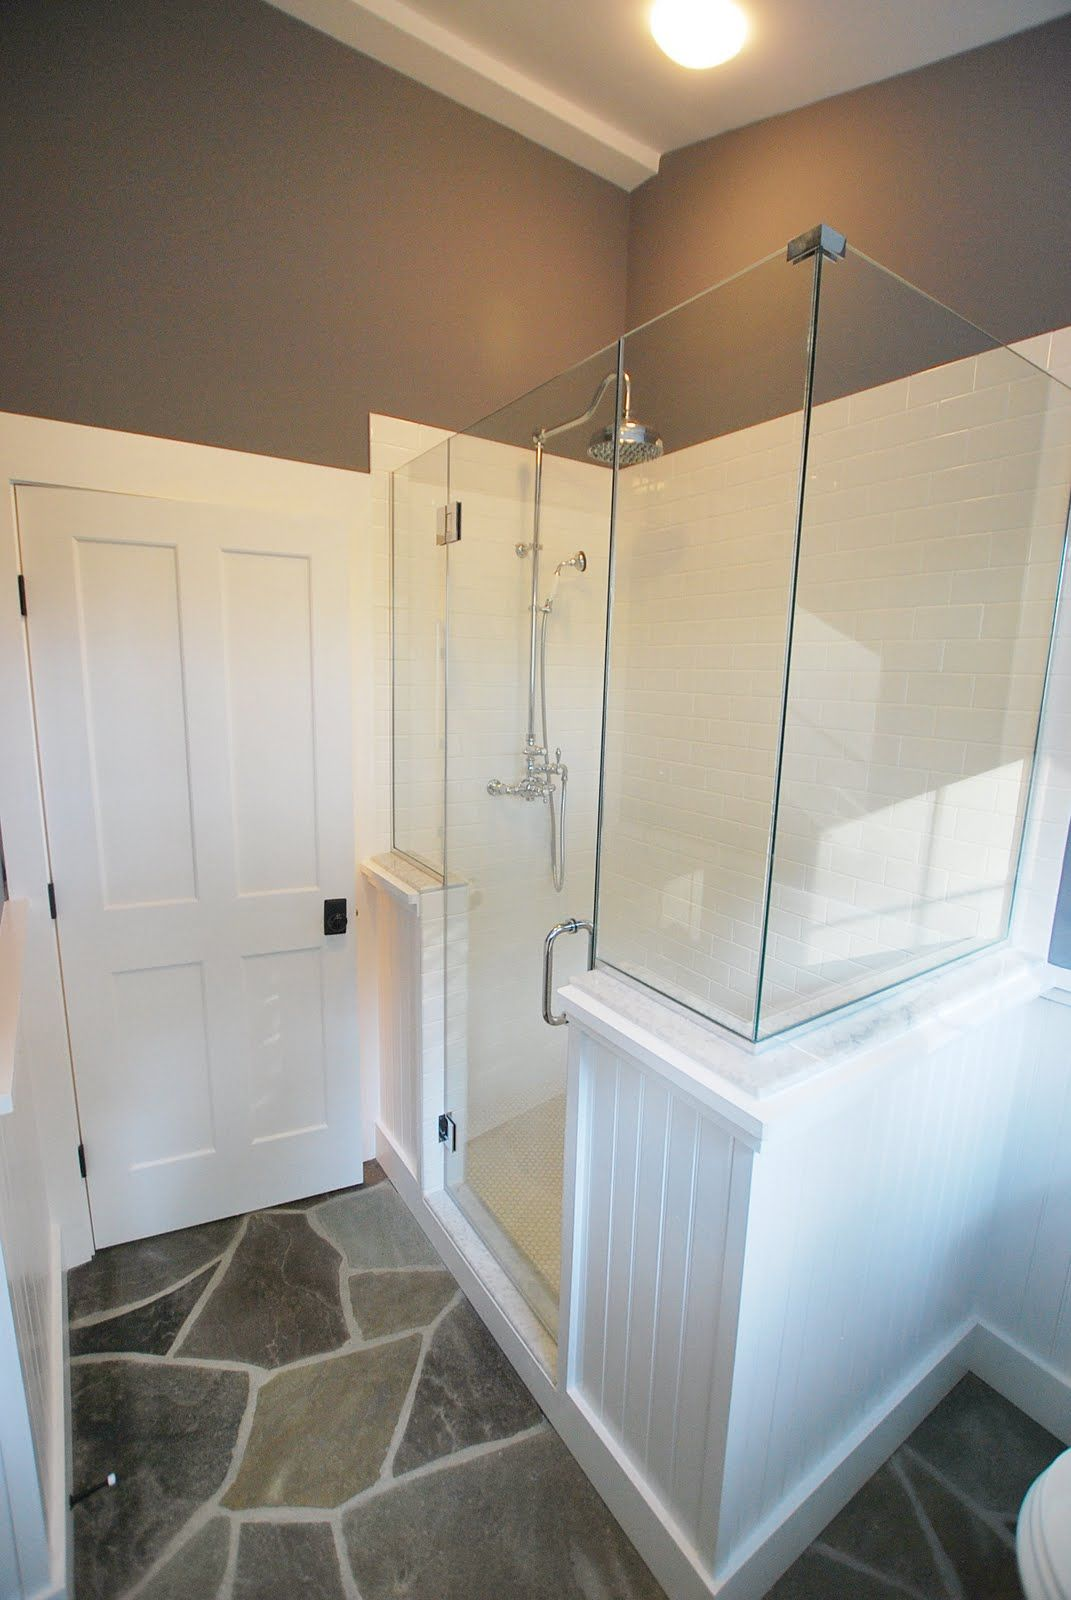 wainscoting and frameless glass shower enclosure. not fond of the ...